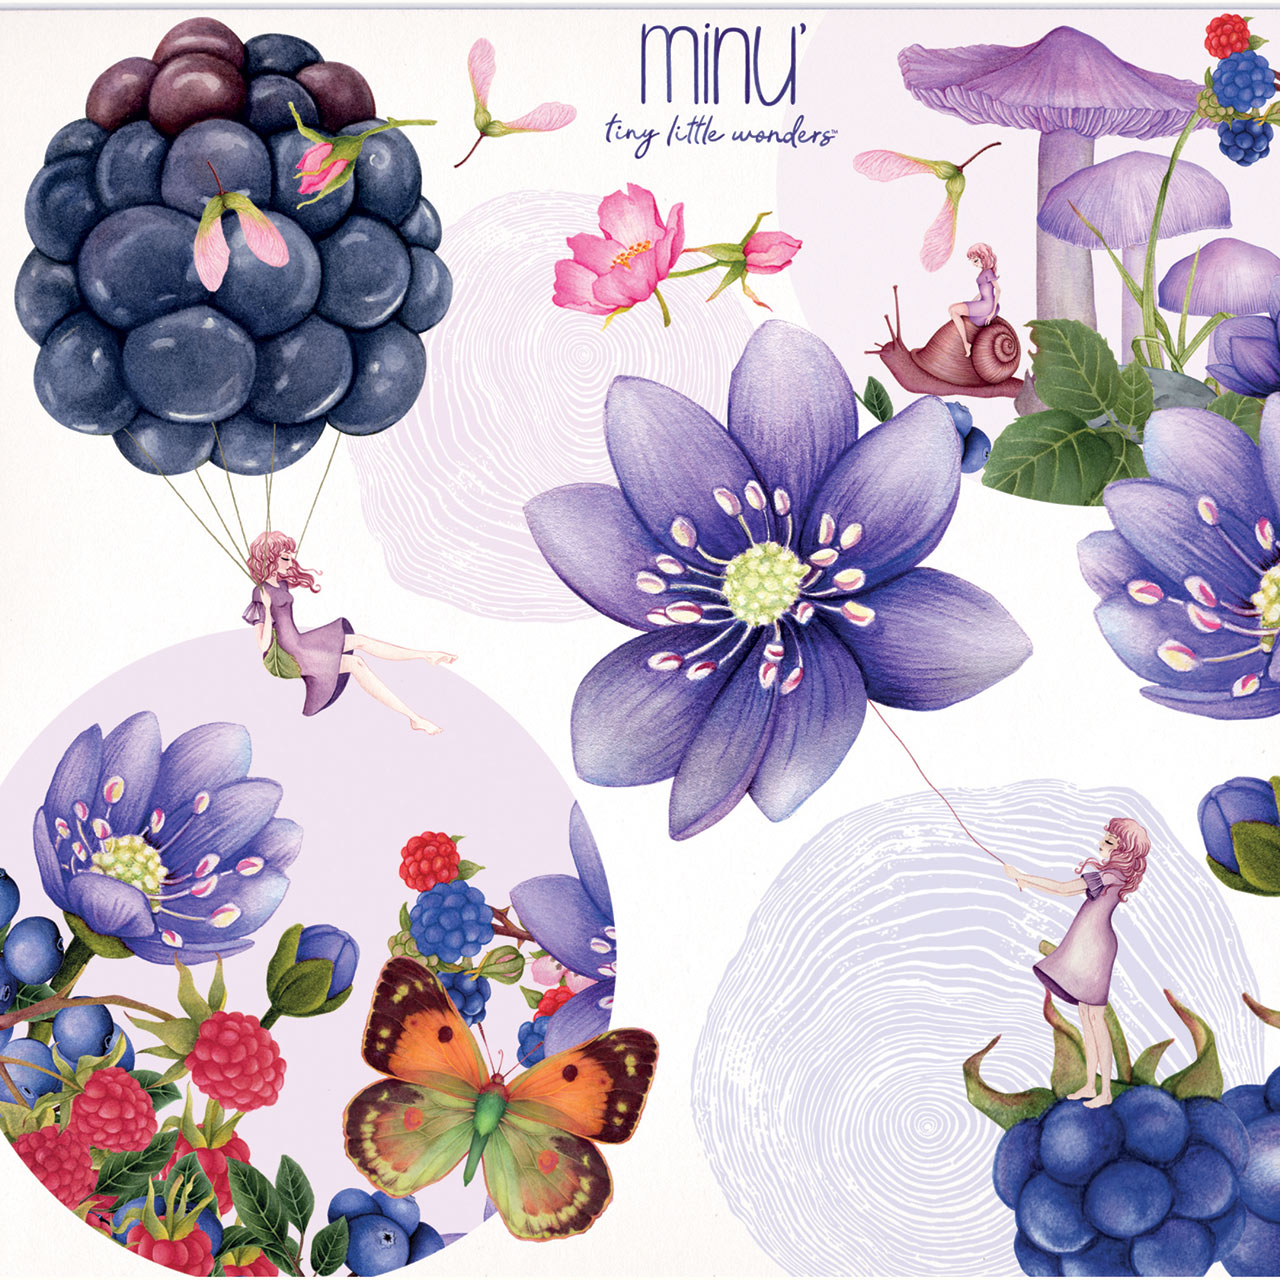 yume-wildberry collection